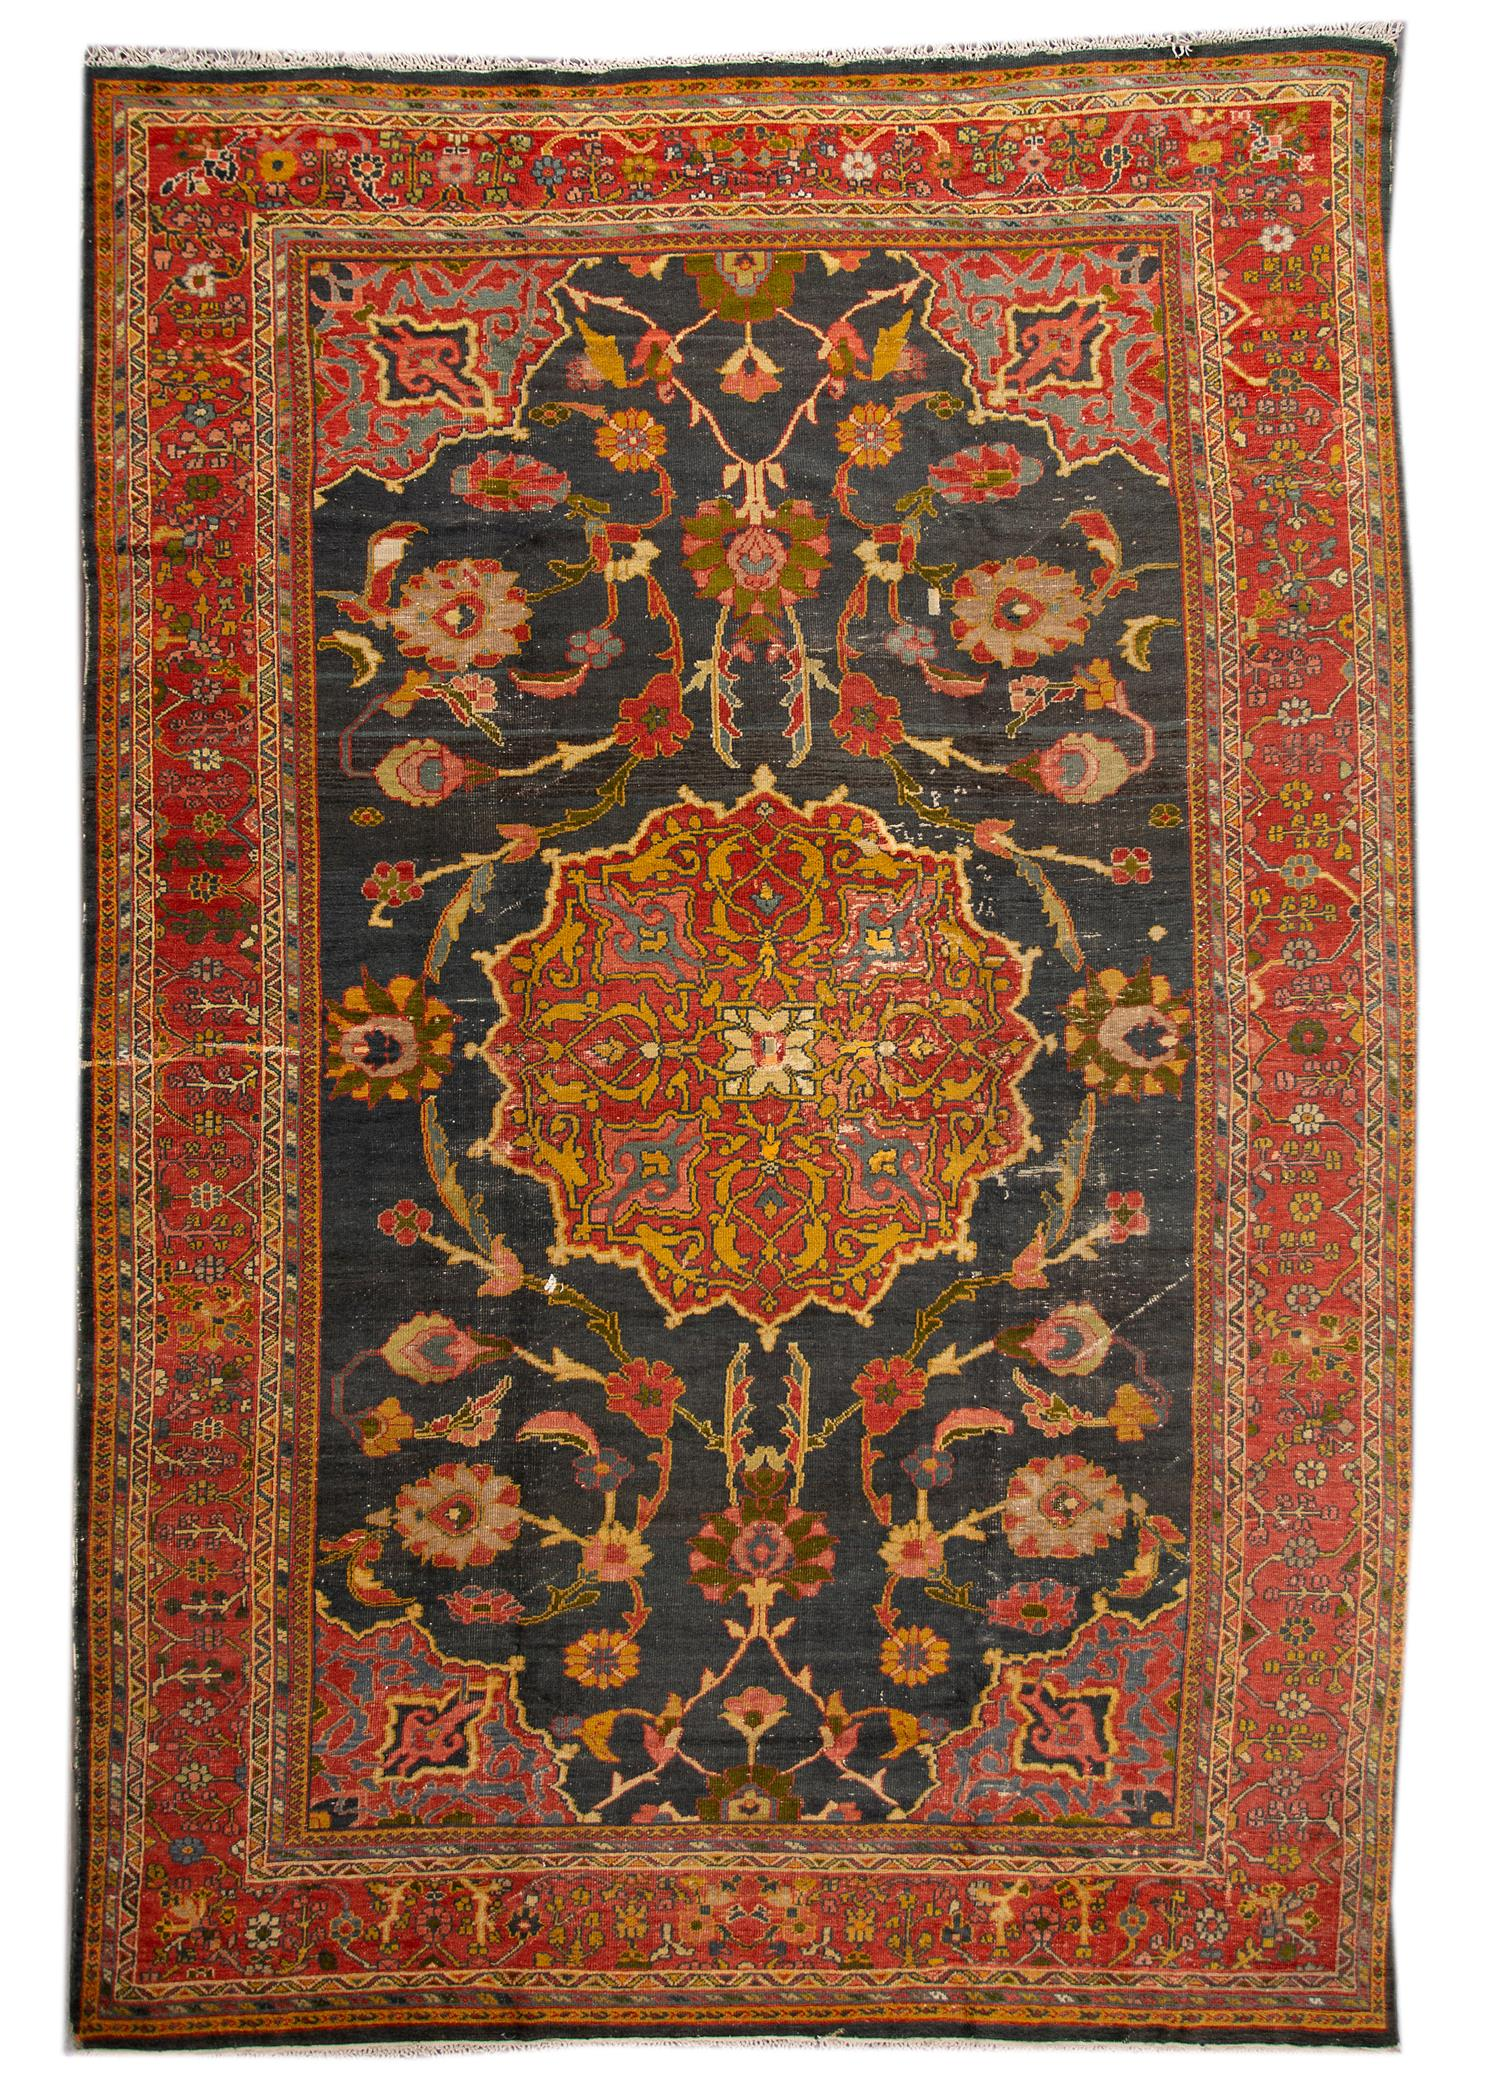 Antique Distressed Mahal Rug, 10X15